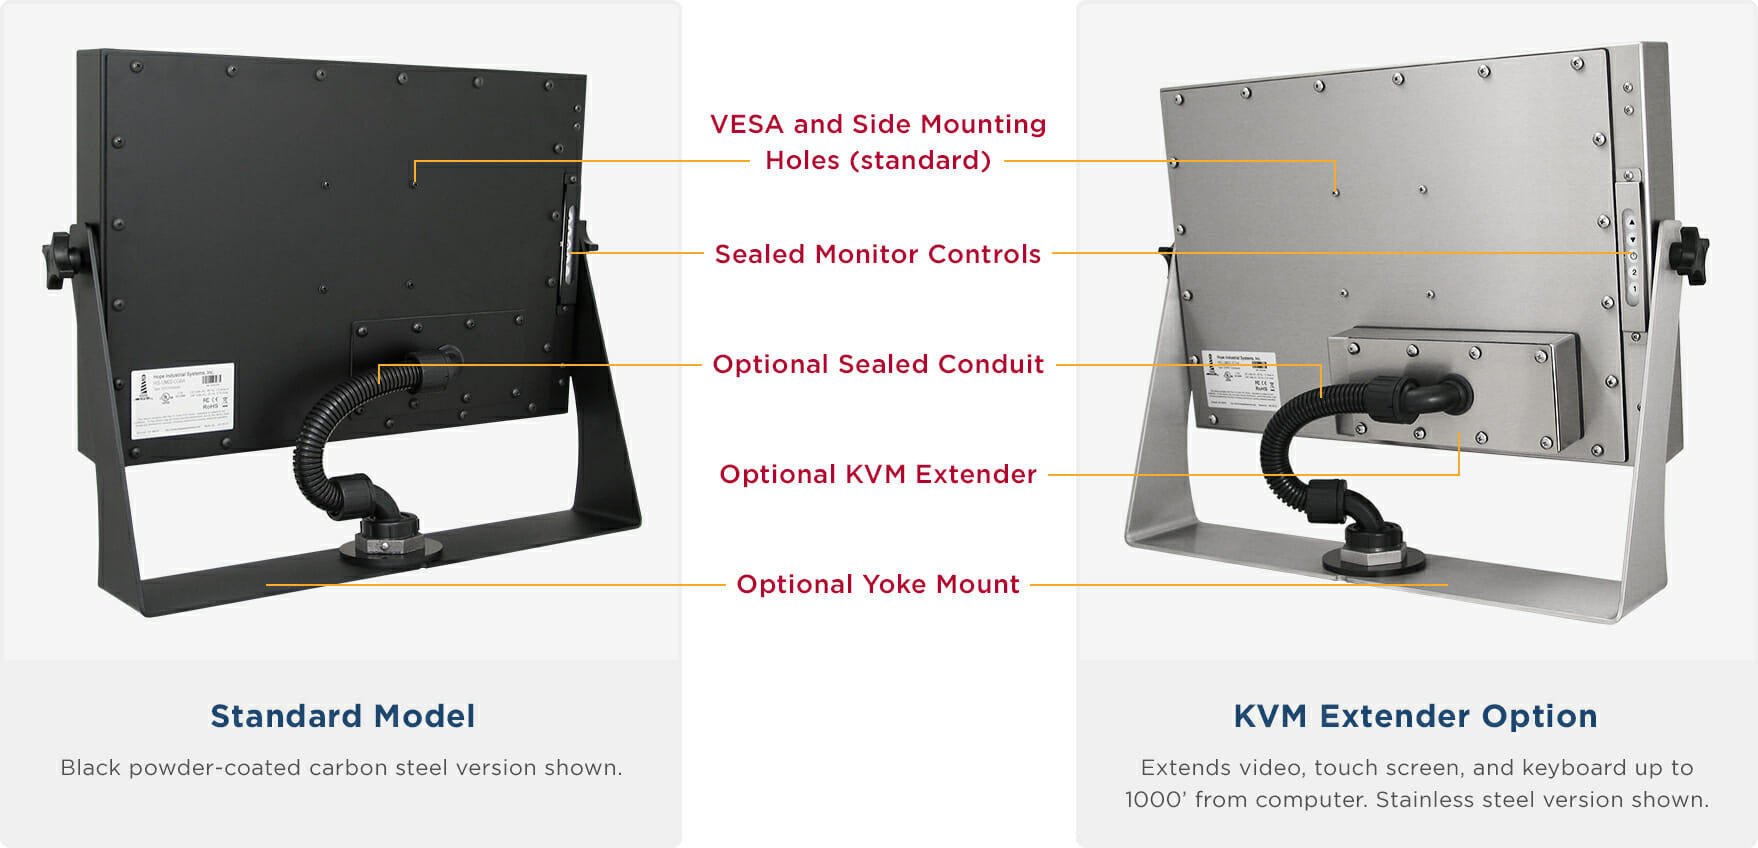 "Rear views of NEMA 4/4X Rated Widescreen 22"" Universal Mount Monitors showing Industrial Enclosure features and options"